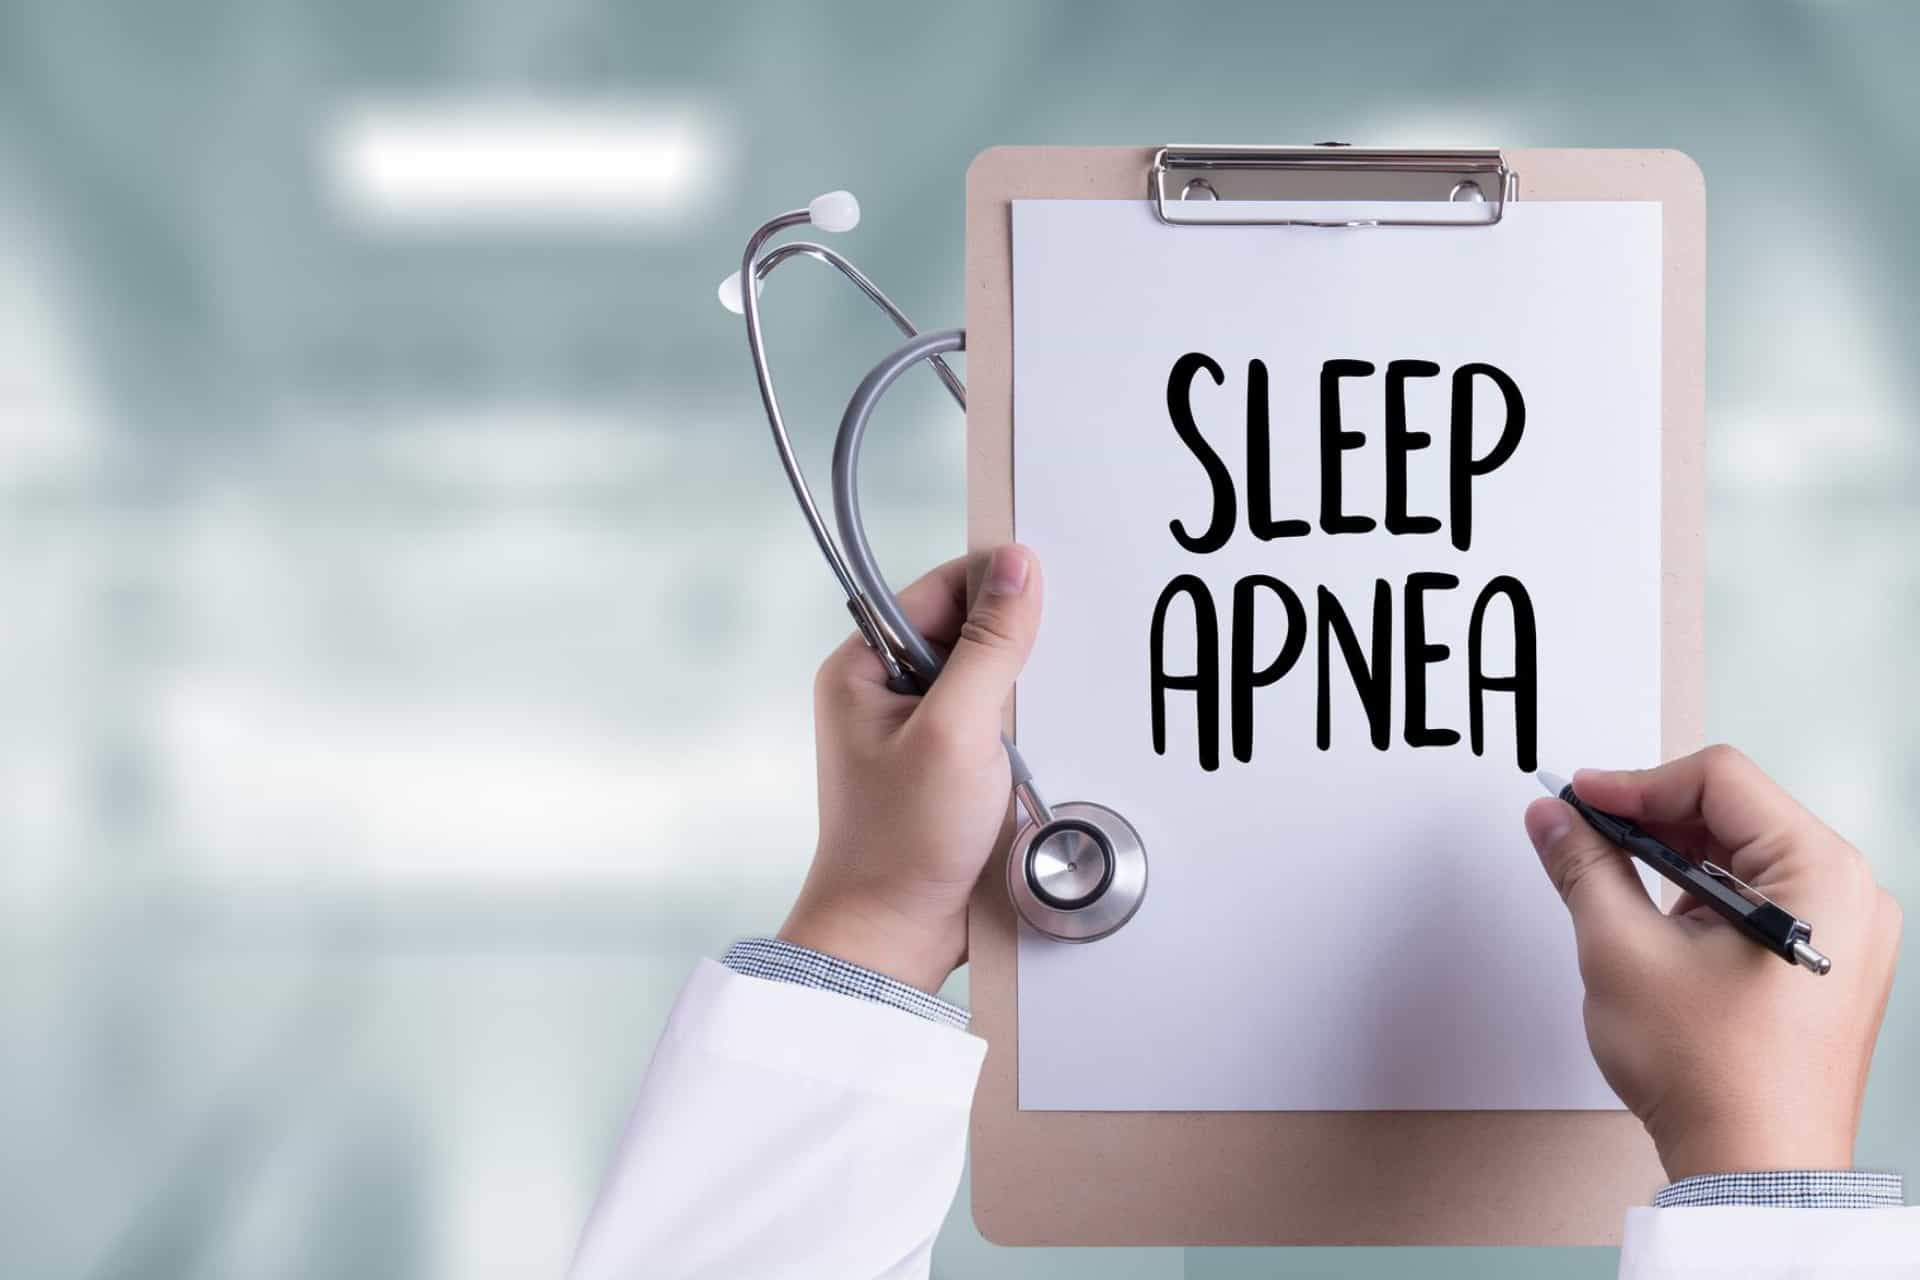 Dr. clipboard shows diagnosis of sleep apnea.